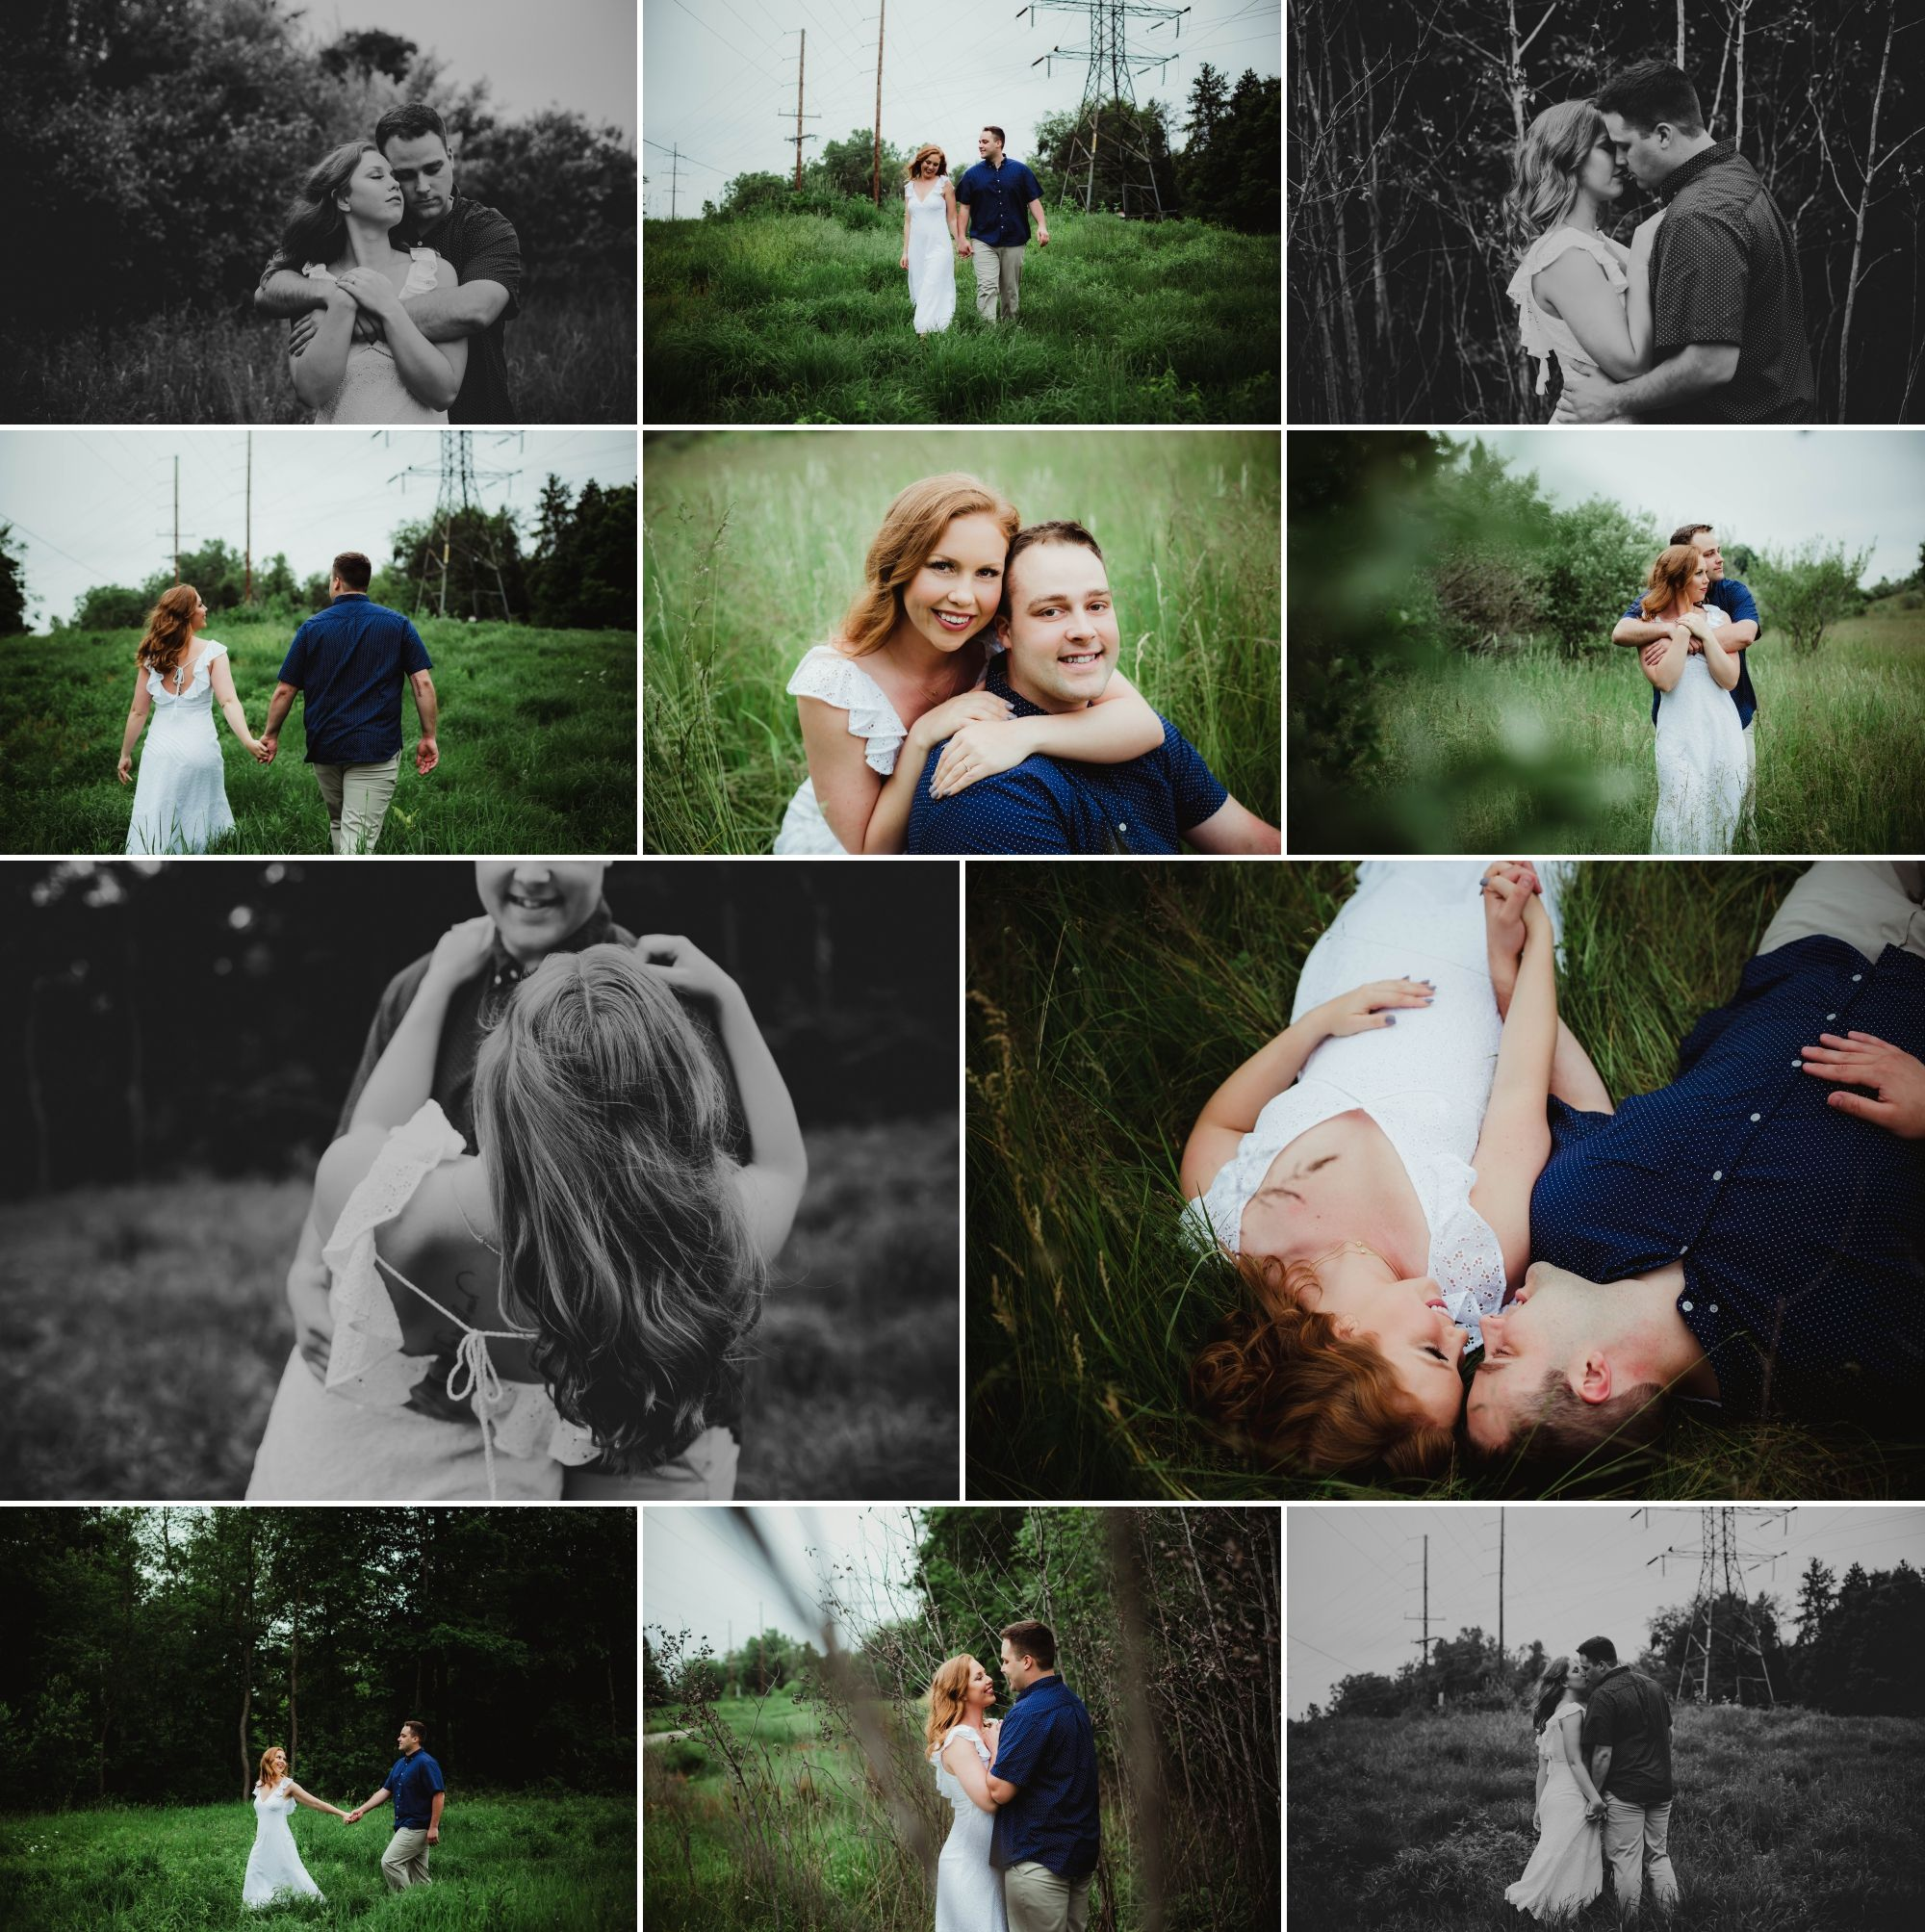 A collage of an engaged couple in a park and a field. She has a white dress and red hair, he has a blue shirt & khakis.